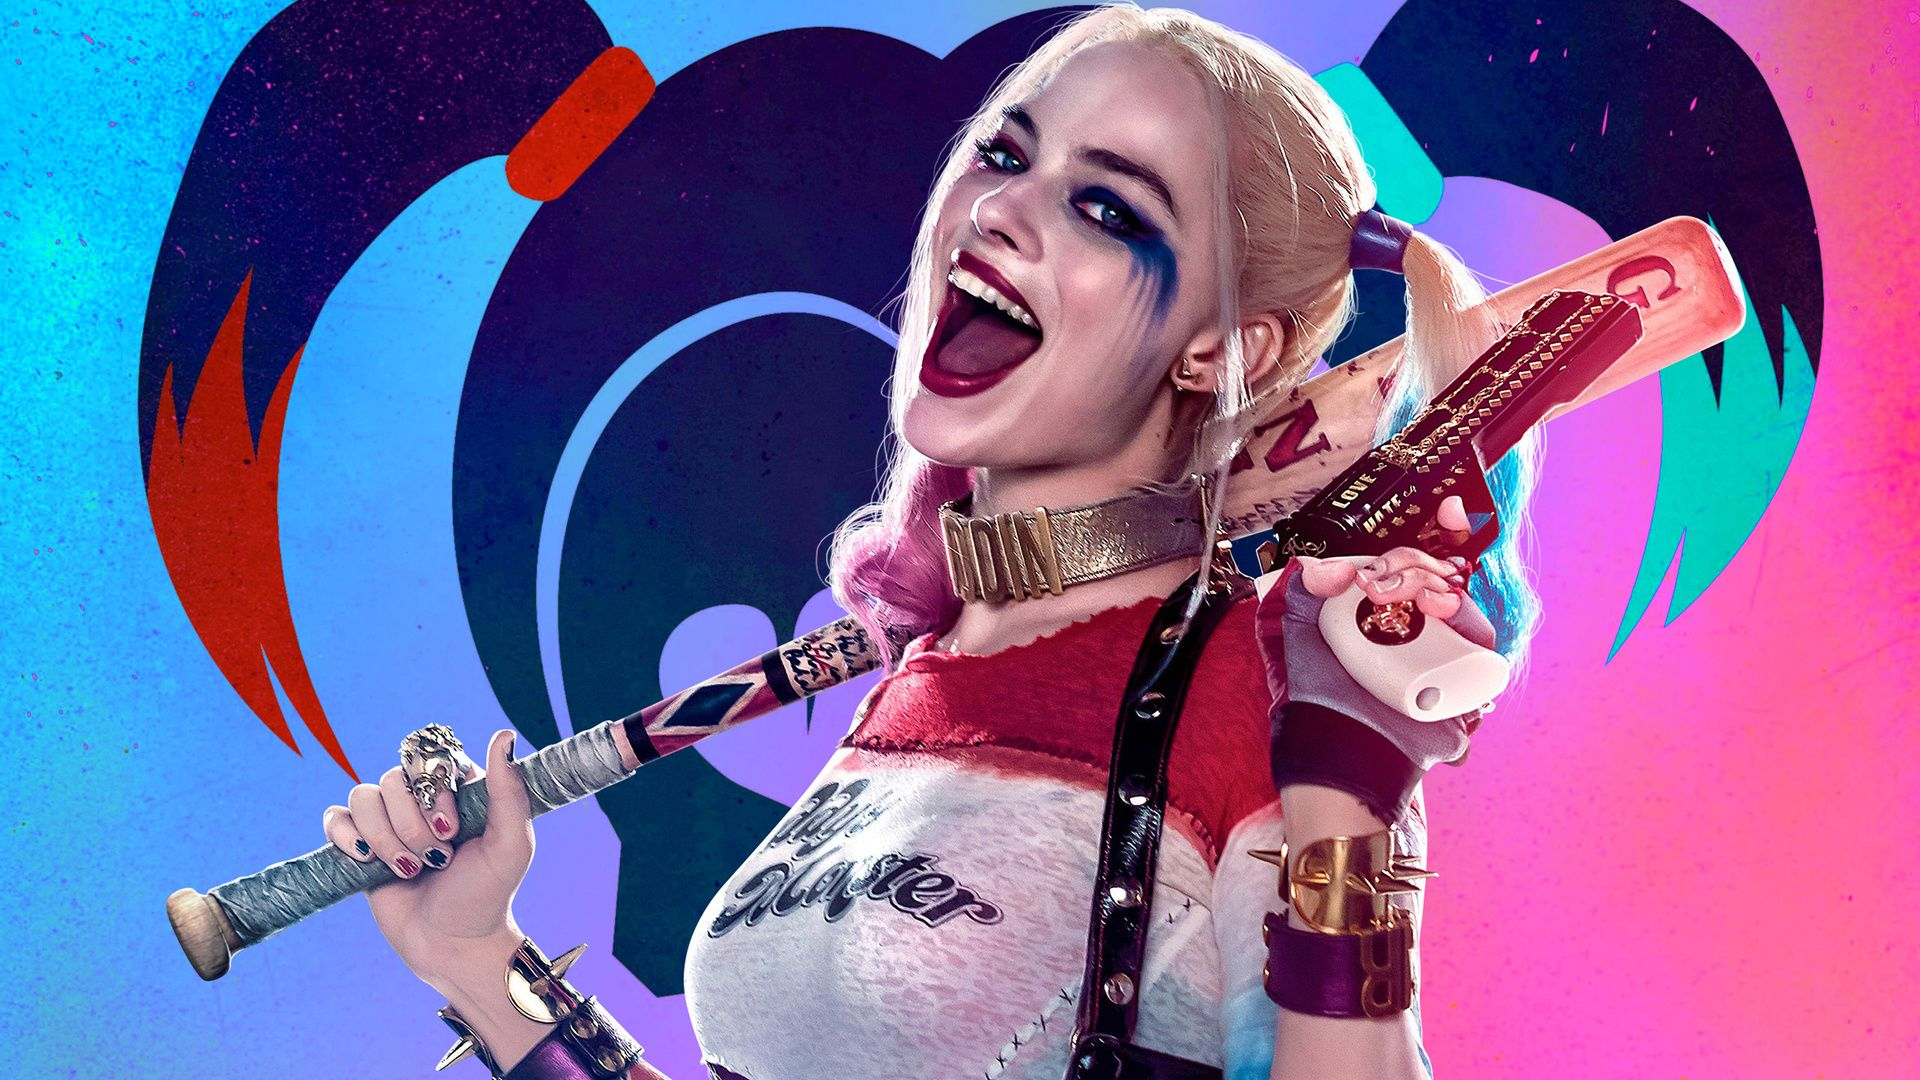 Harley Quinn Wallpapers